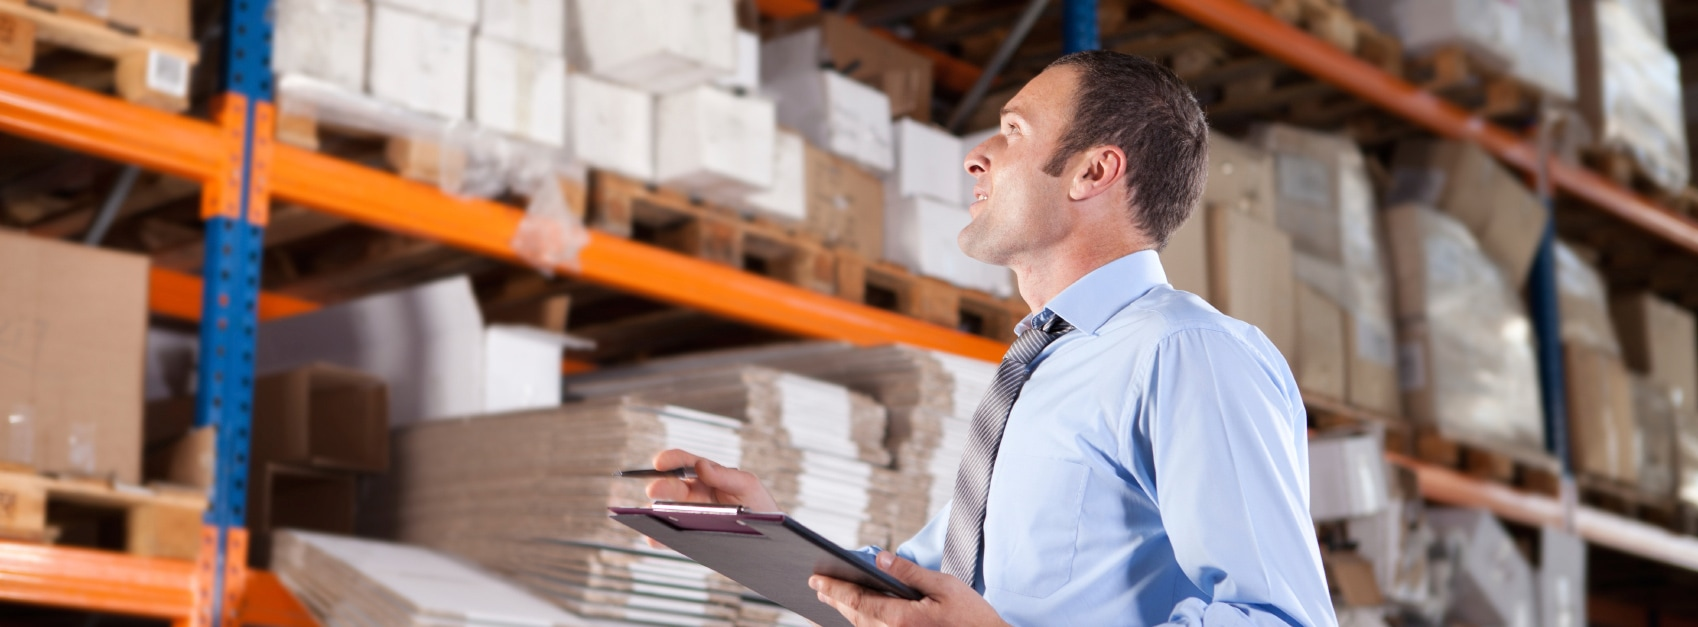 Business Processes for Retail/Logistic - man counts stock in warehouse